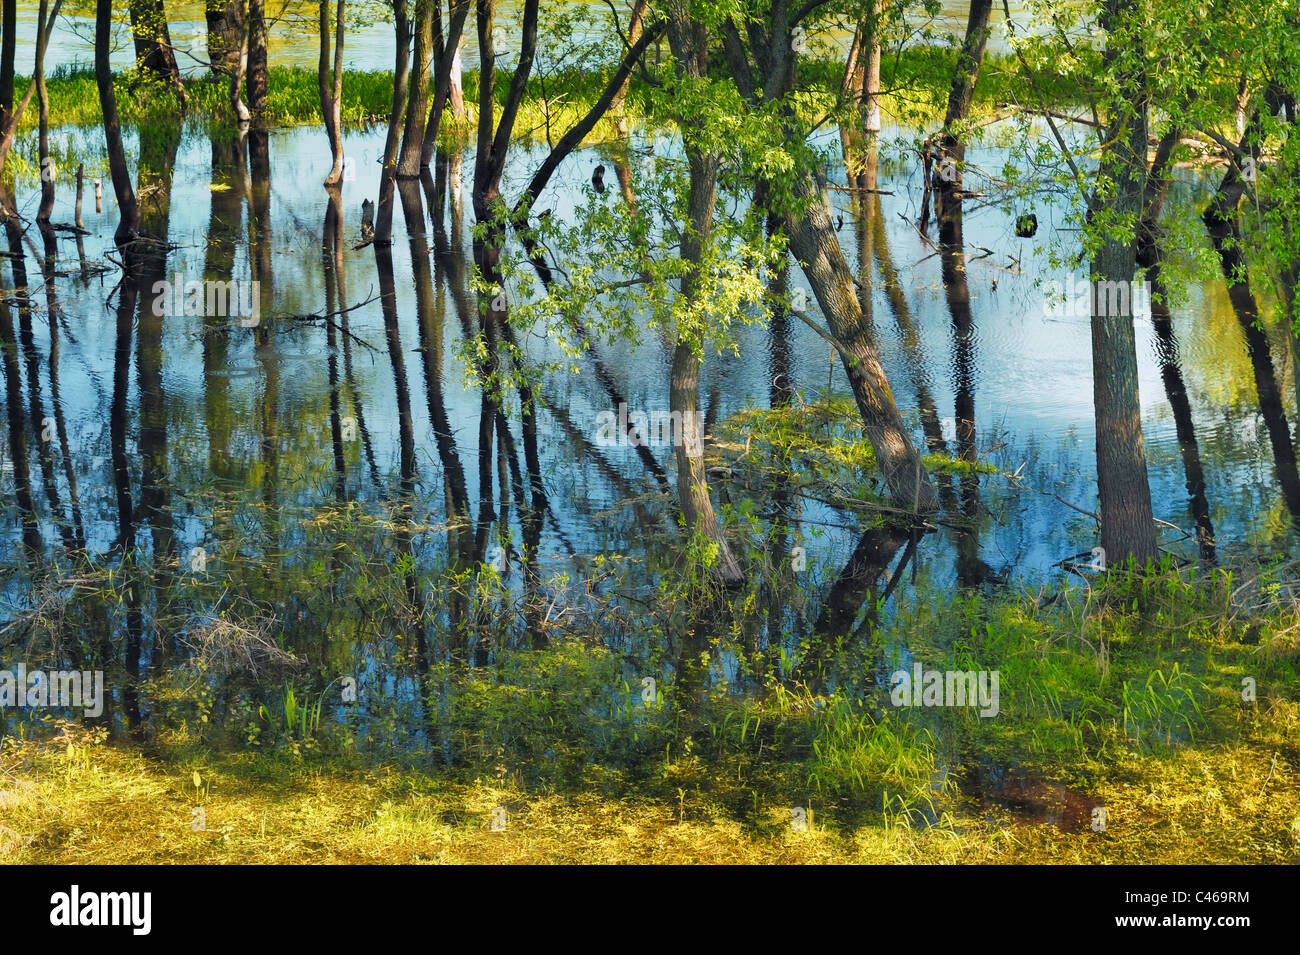 Trees in the swamp - Stock Image